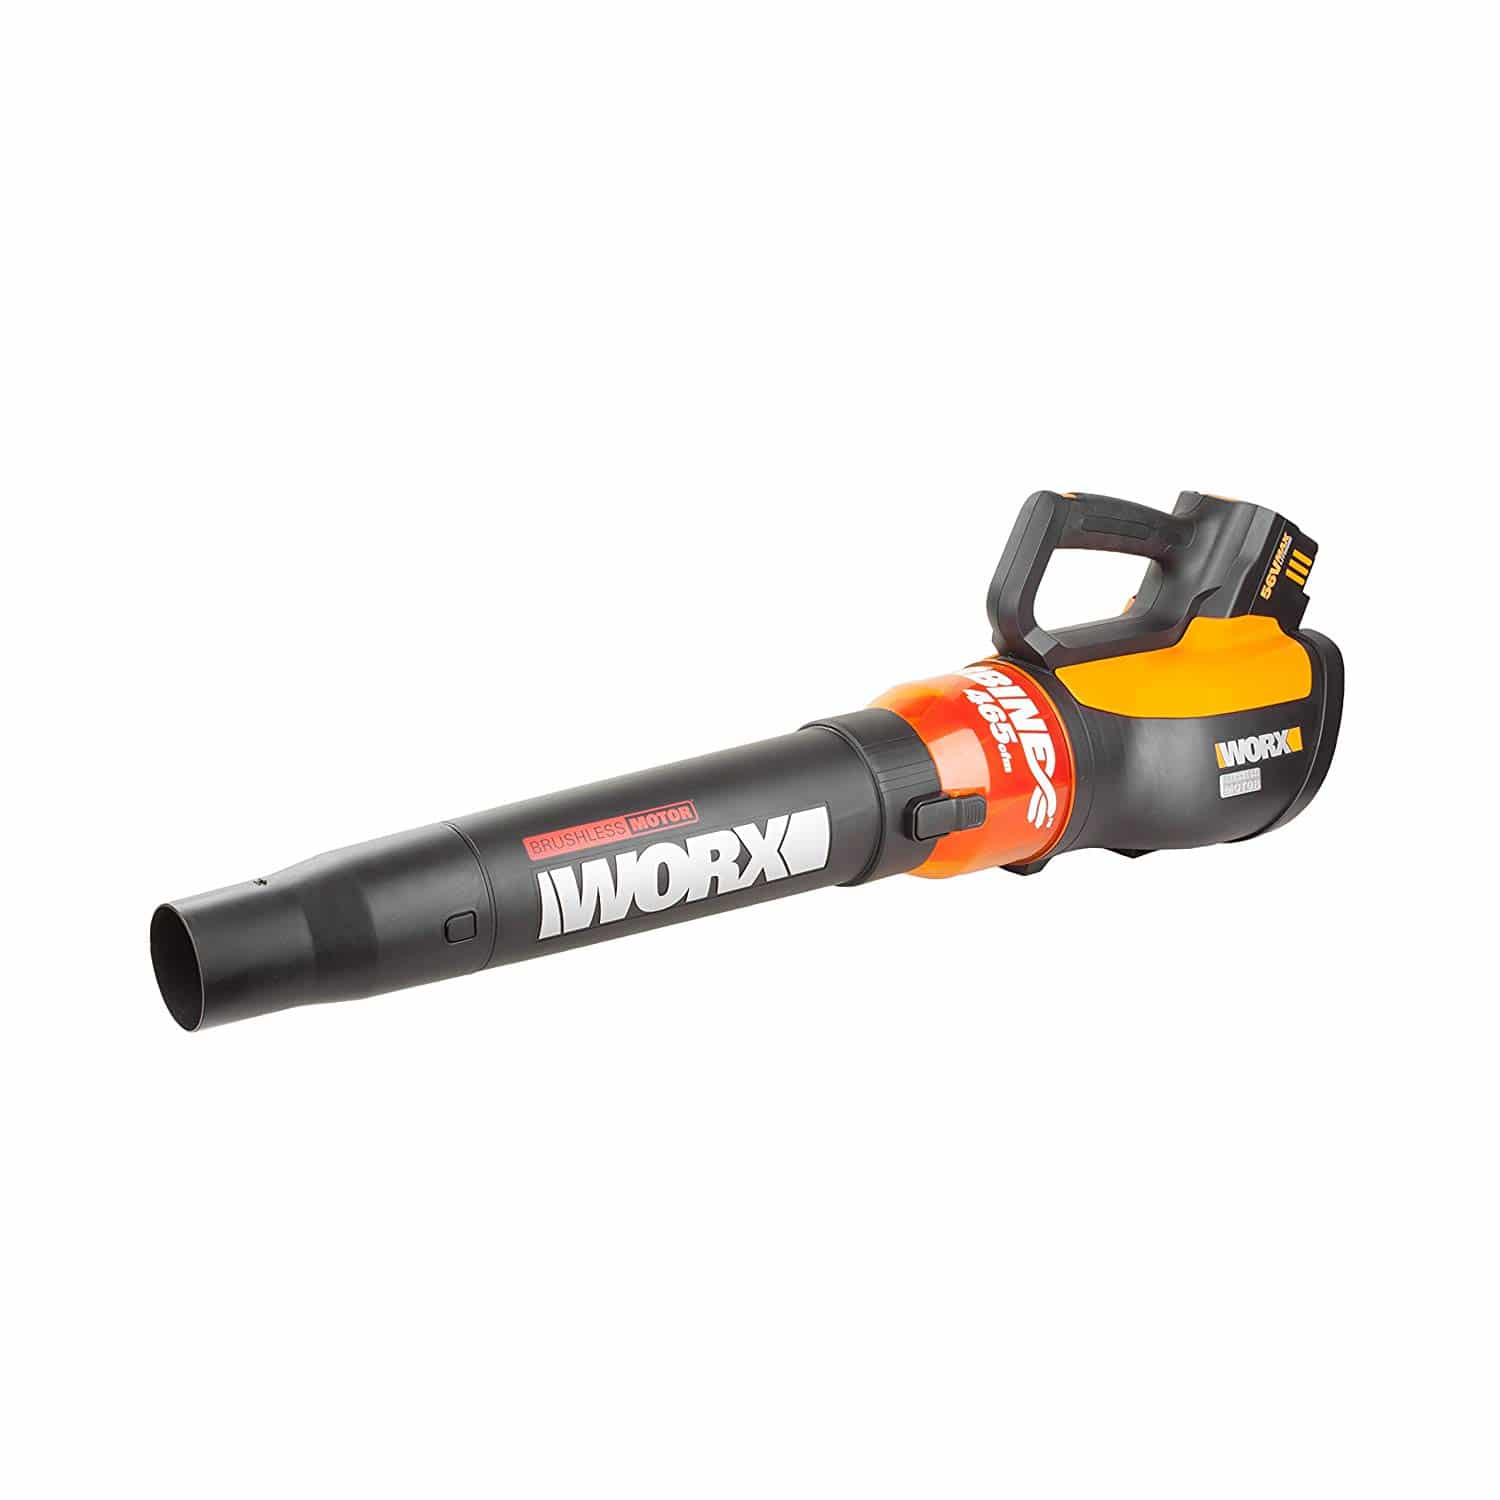 WORX WG591 Turbine 56V Cordless Battery-Powered Leaf Blower